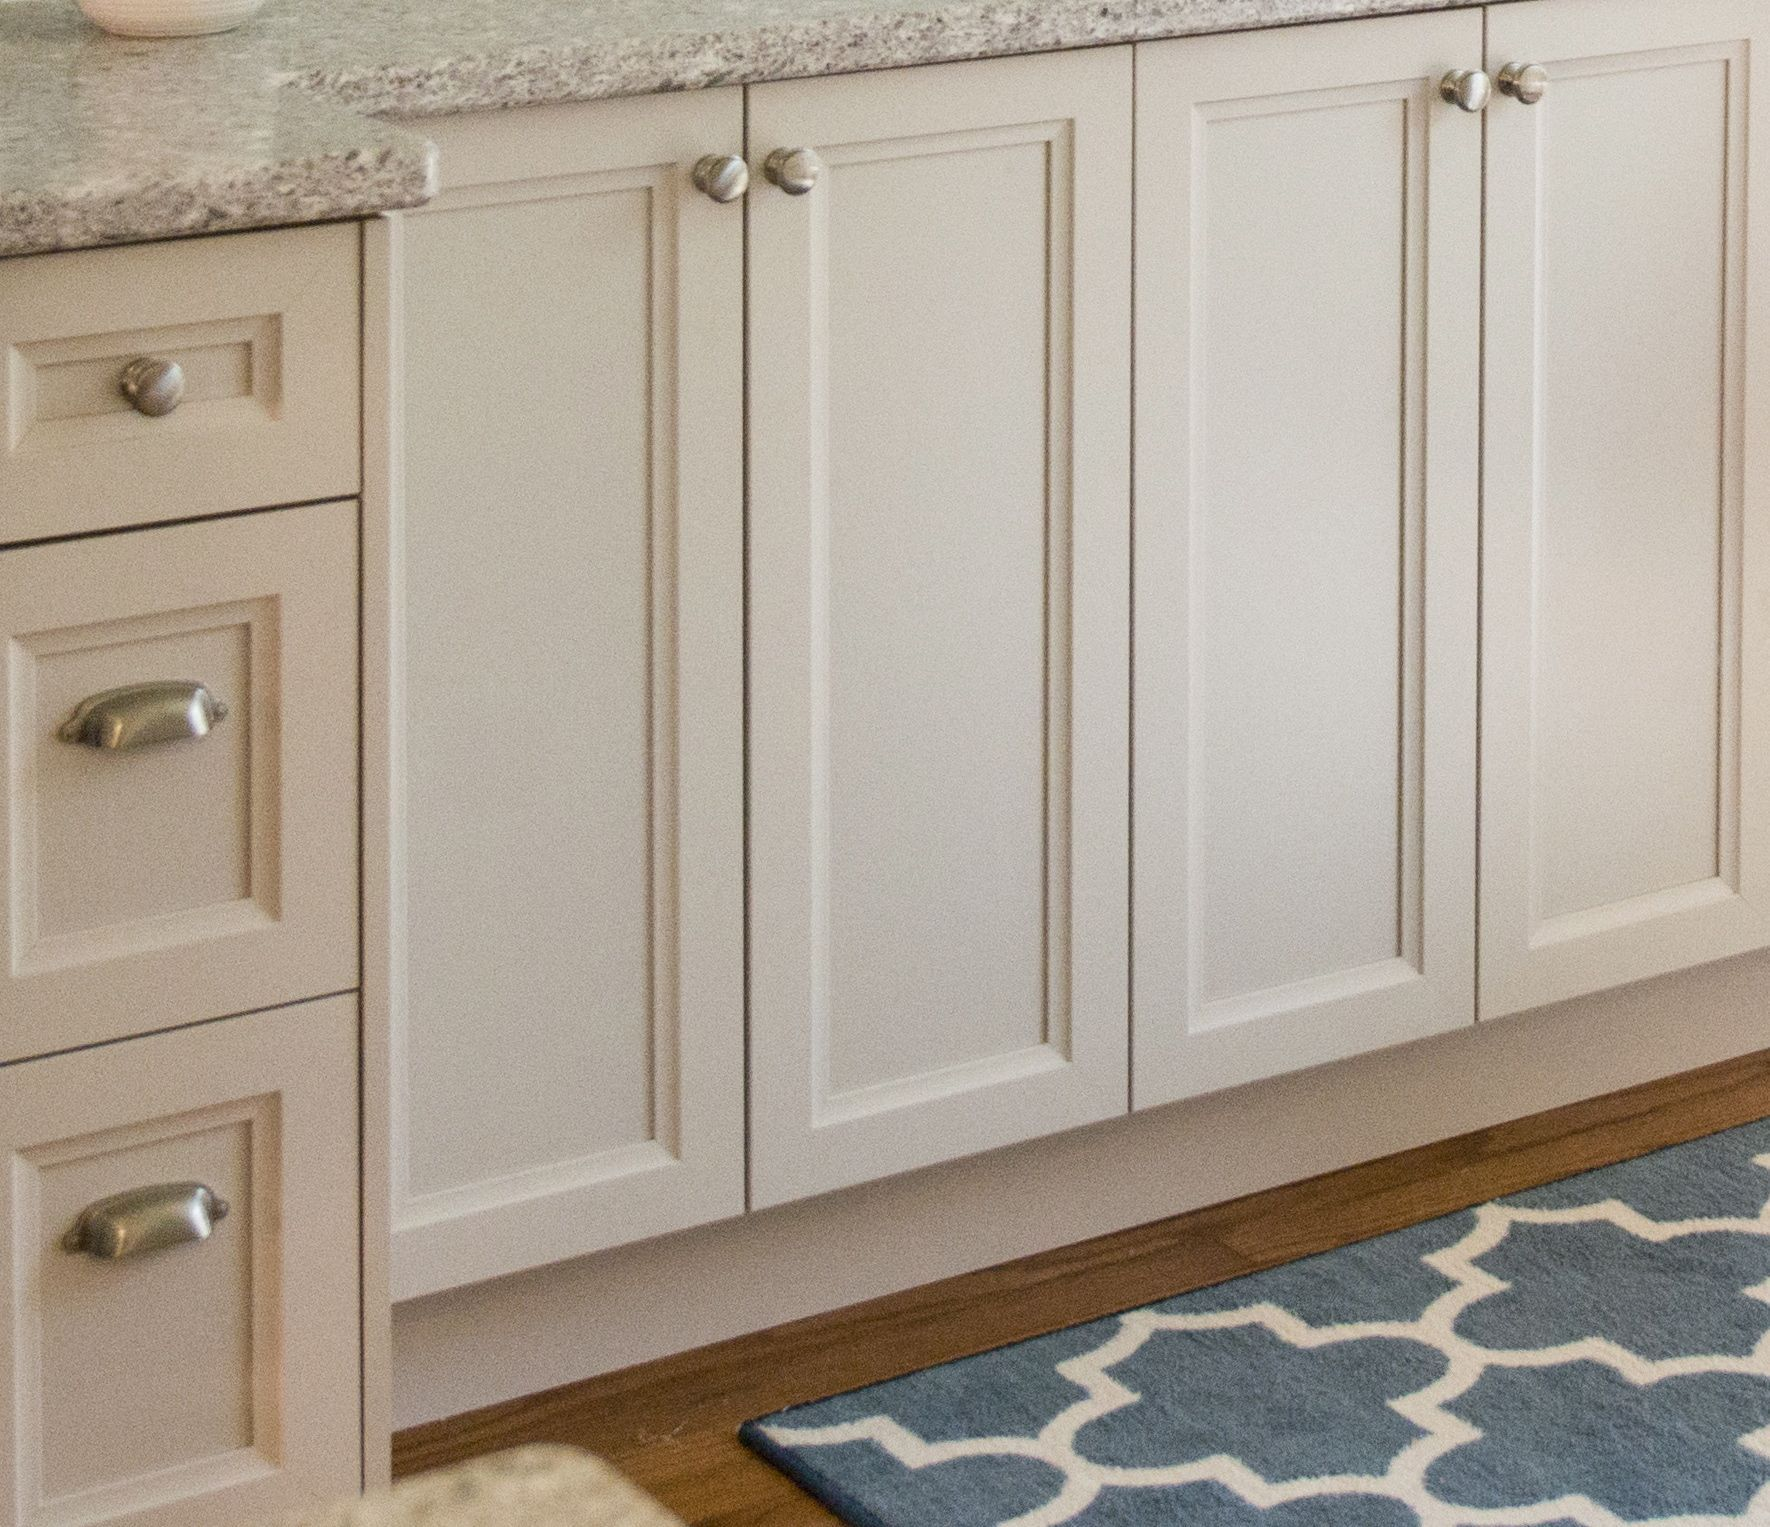 katherine image motif single kbcawtcarr silhouette kitchen and best bath collection ideas cutler sink beautiful vanity